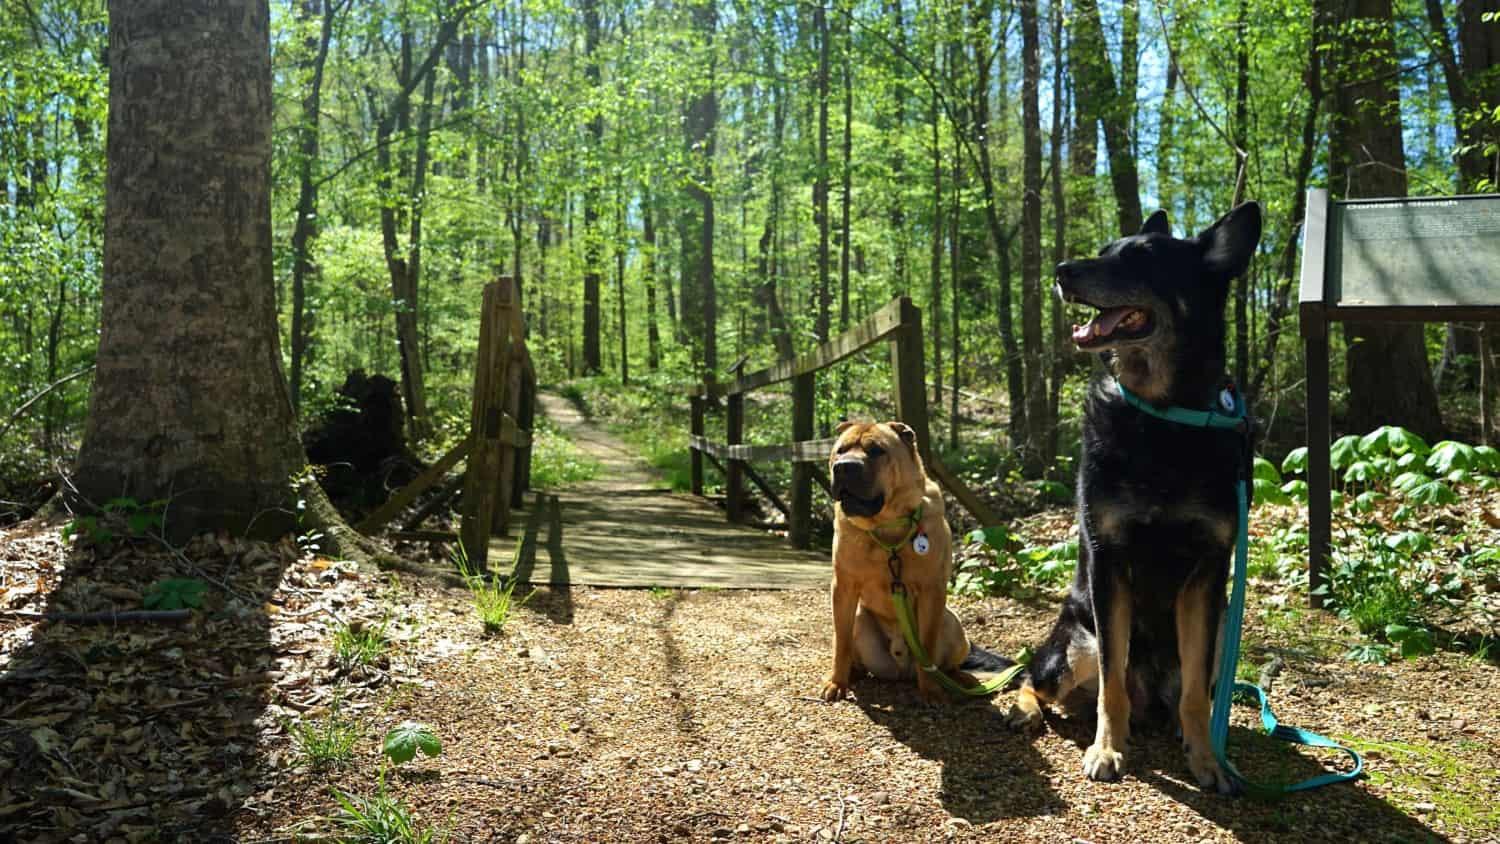 Mississippi's Top Pet Friendly Attraction: The Natchez Trace | GoPetFriendly.com